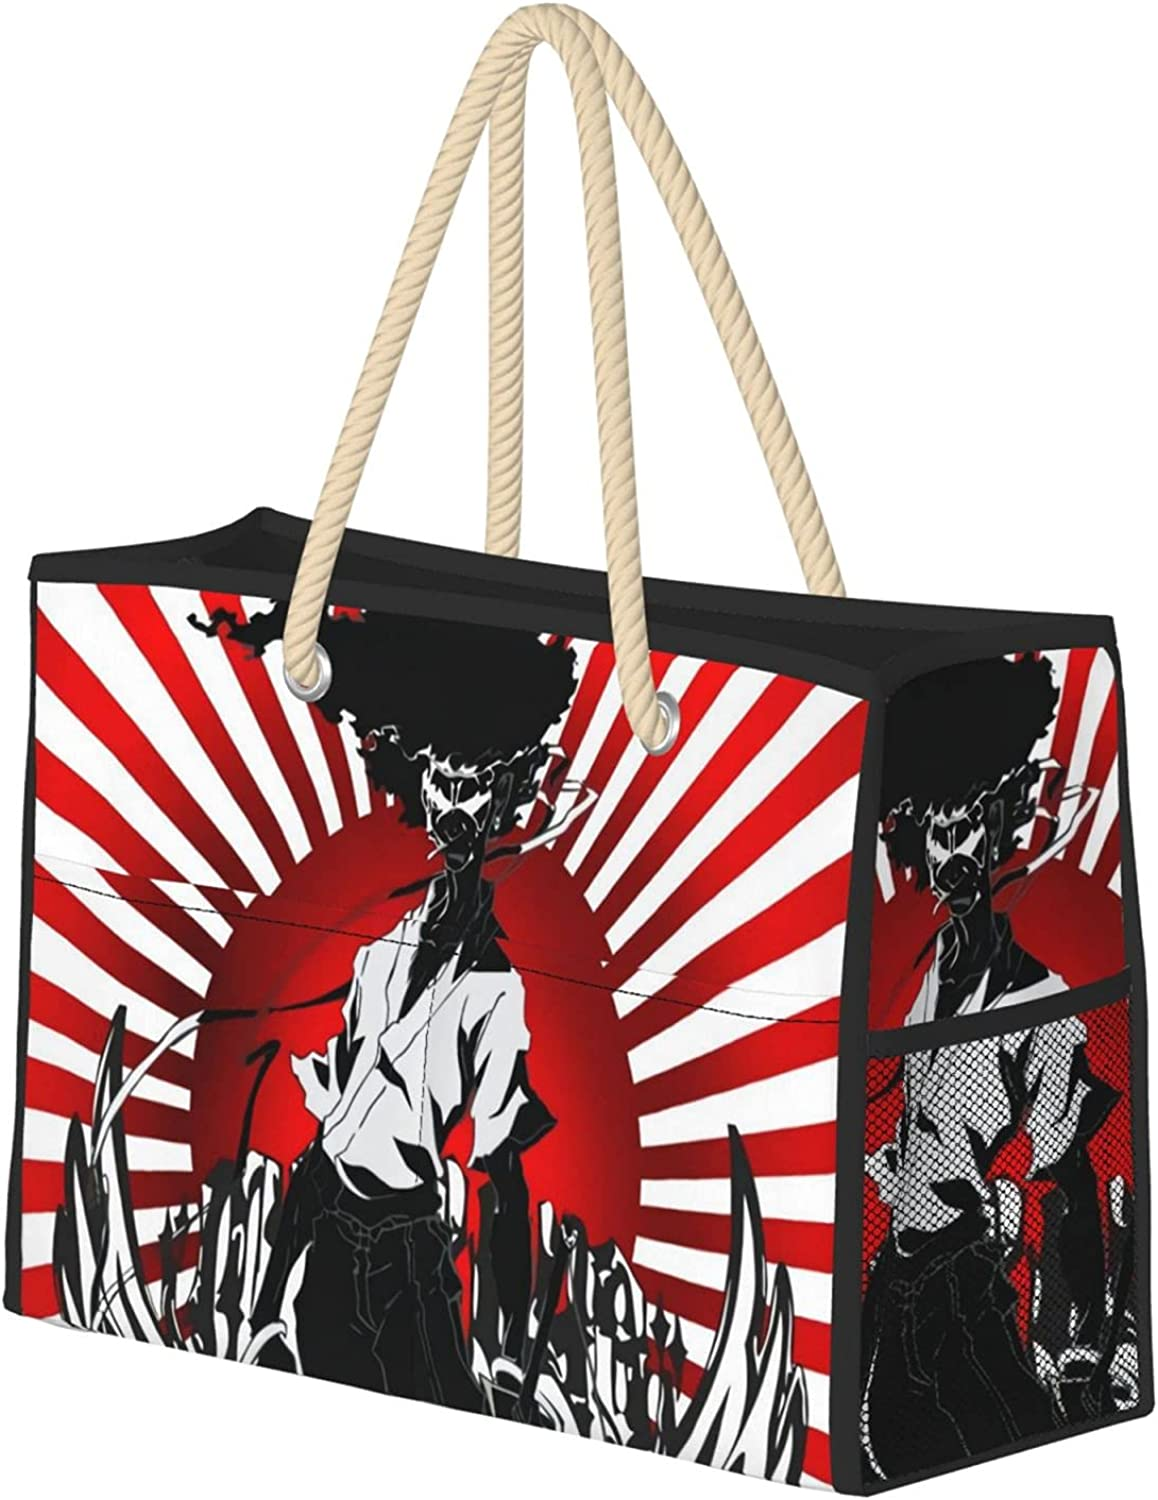 Afro Samurai Large Ladies Department store Travel Beauty products Beach Knotted Rope Han With Bag